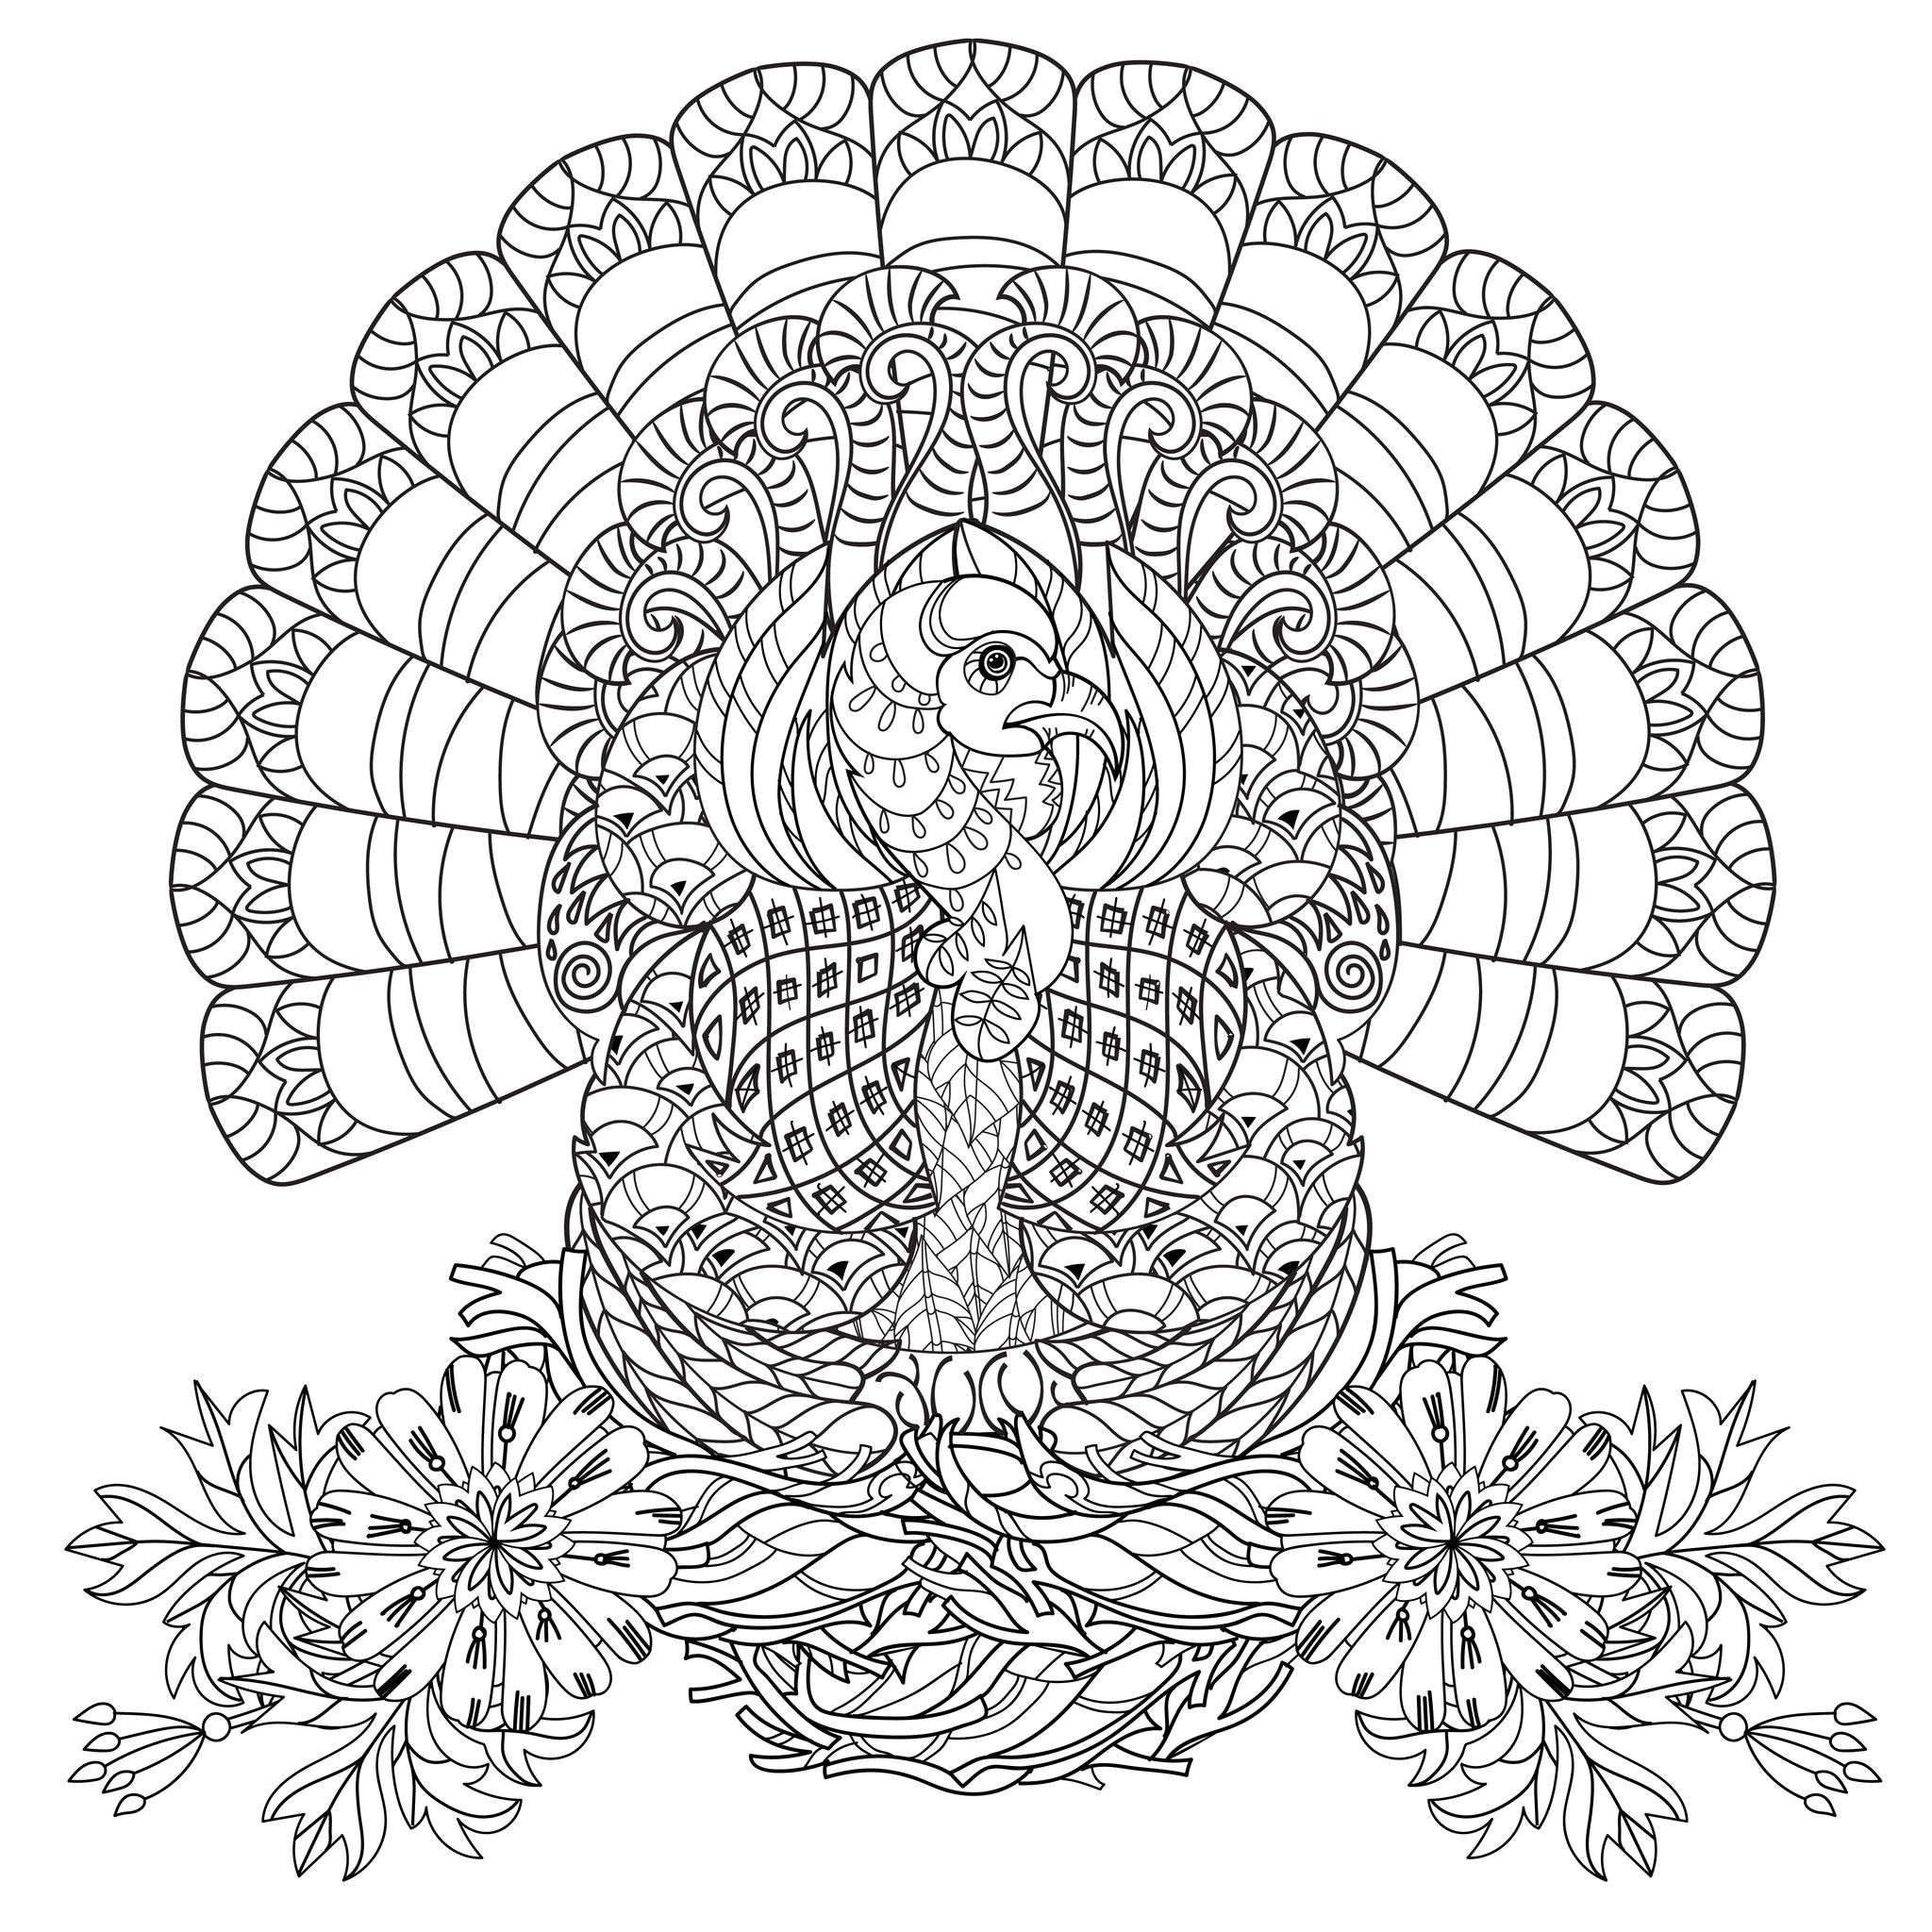 Thanksgiving Coloring Pages For Adults Free  Adult Coloring Pages For Thanksgiving – Happy Easter